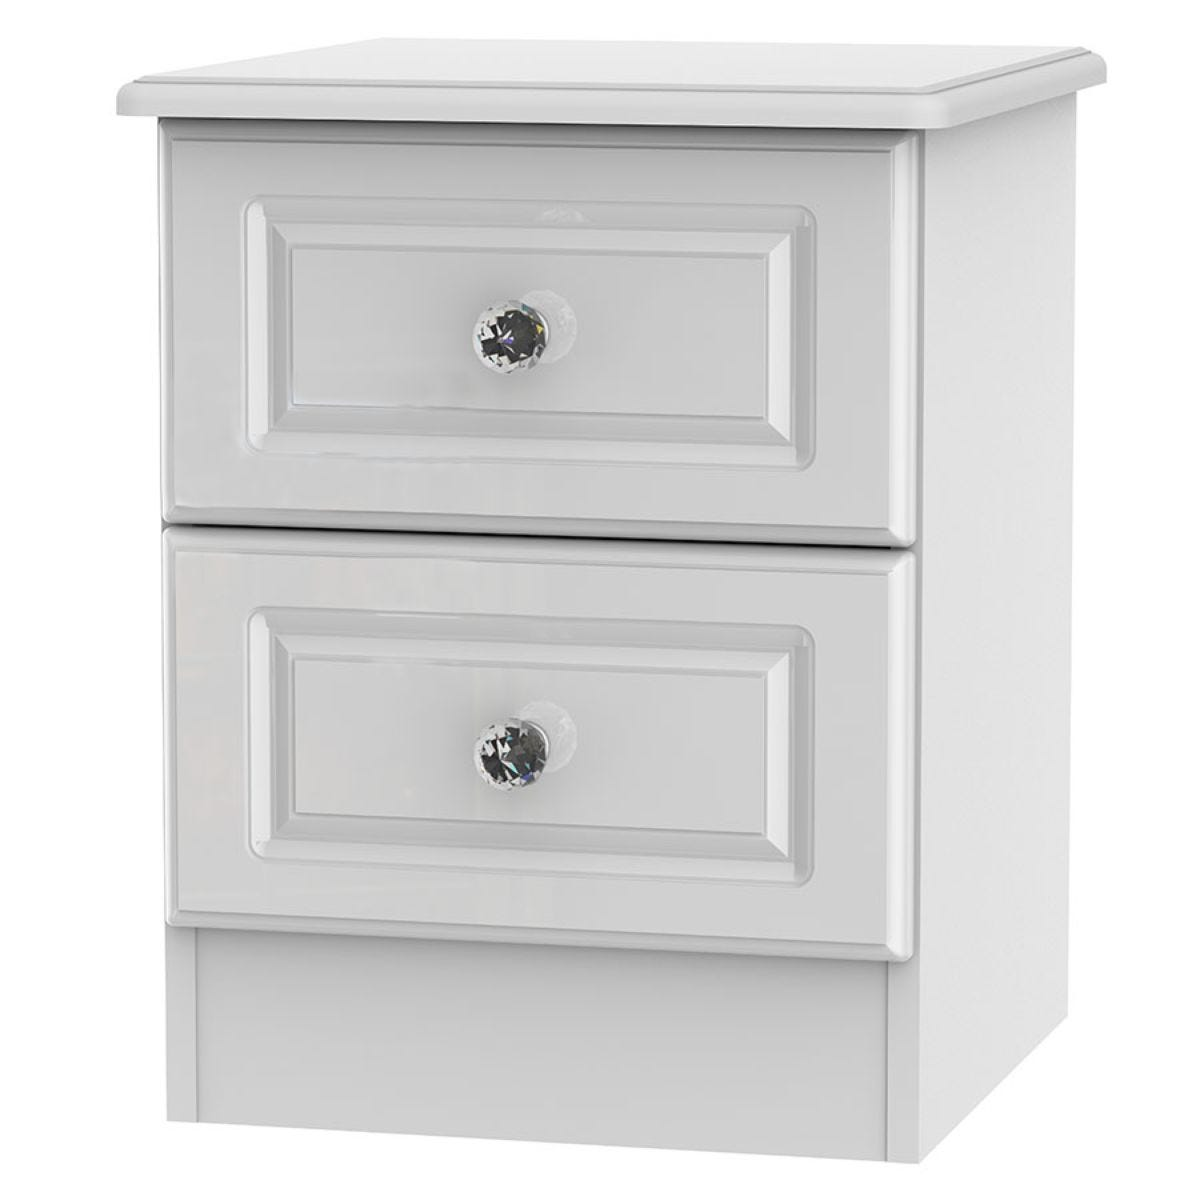 Berryfield 2-Drawer Bedside Table - White